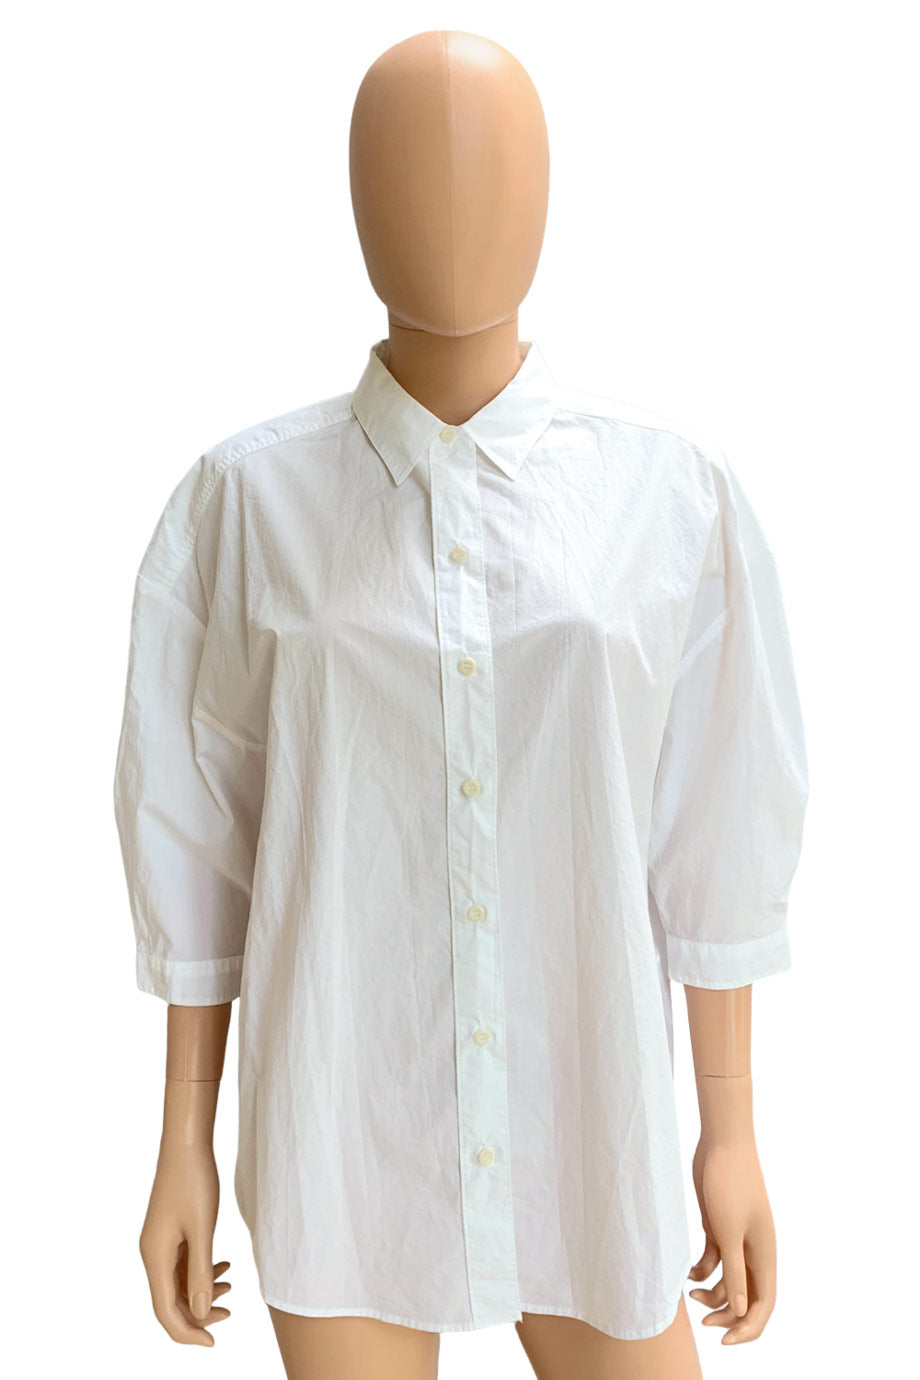 M.i.H Jeans Oversized White Cotton 3/4 Sleeve Button-Up Shirt / Sz S